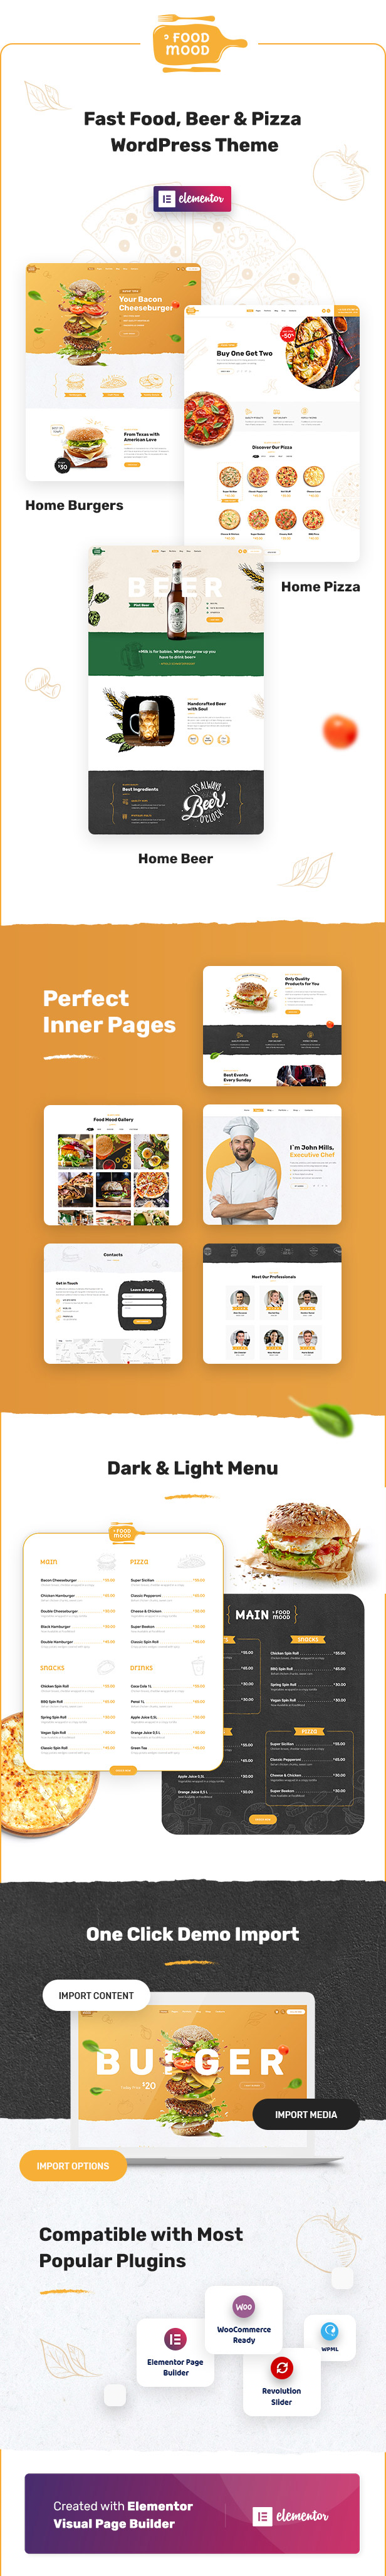 Foodmood - Cafe & Delivery WordPress Theme - 1